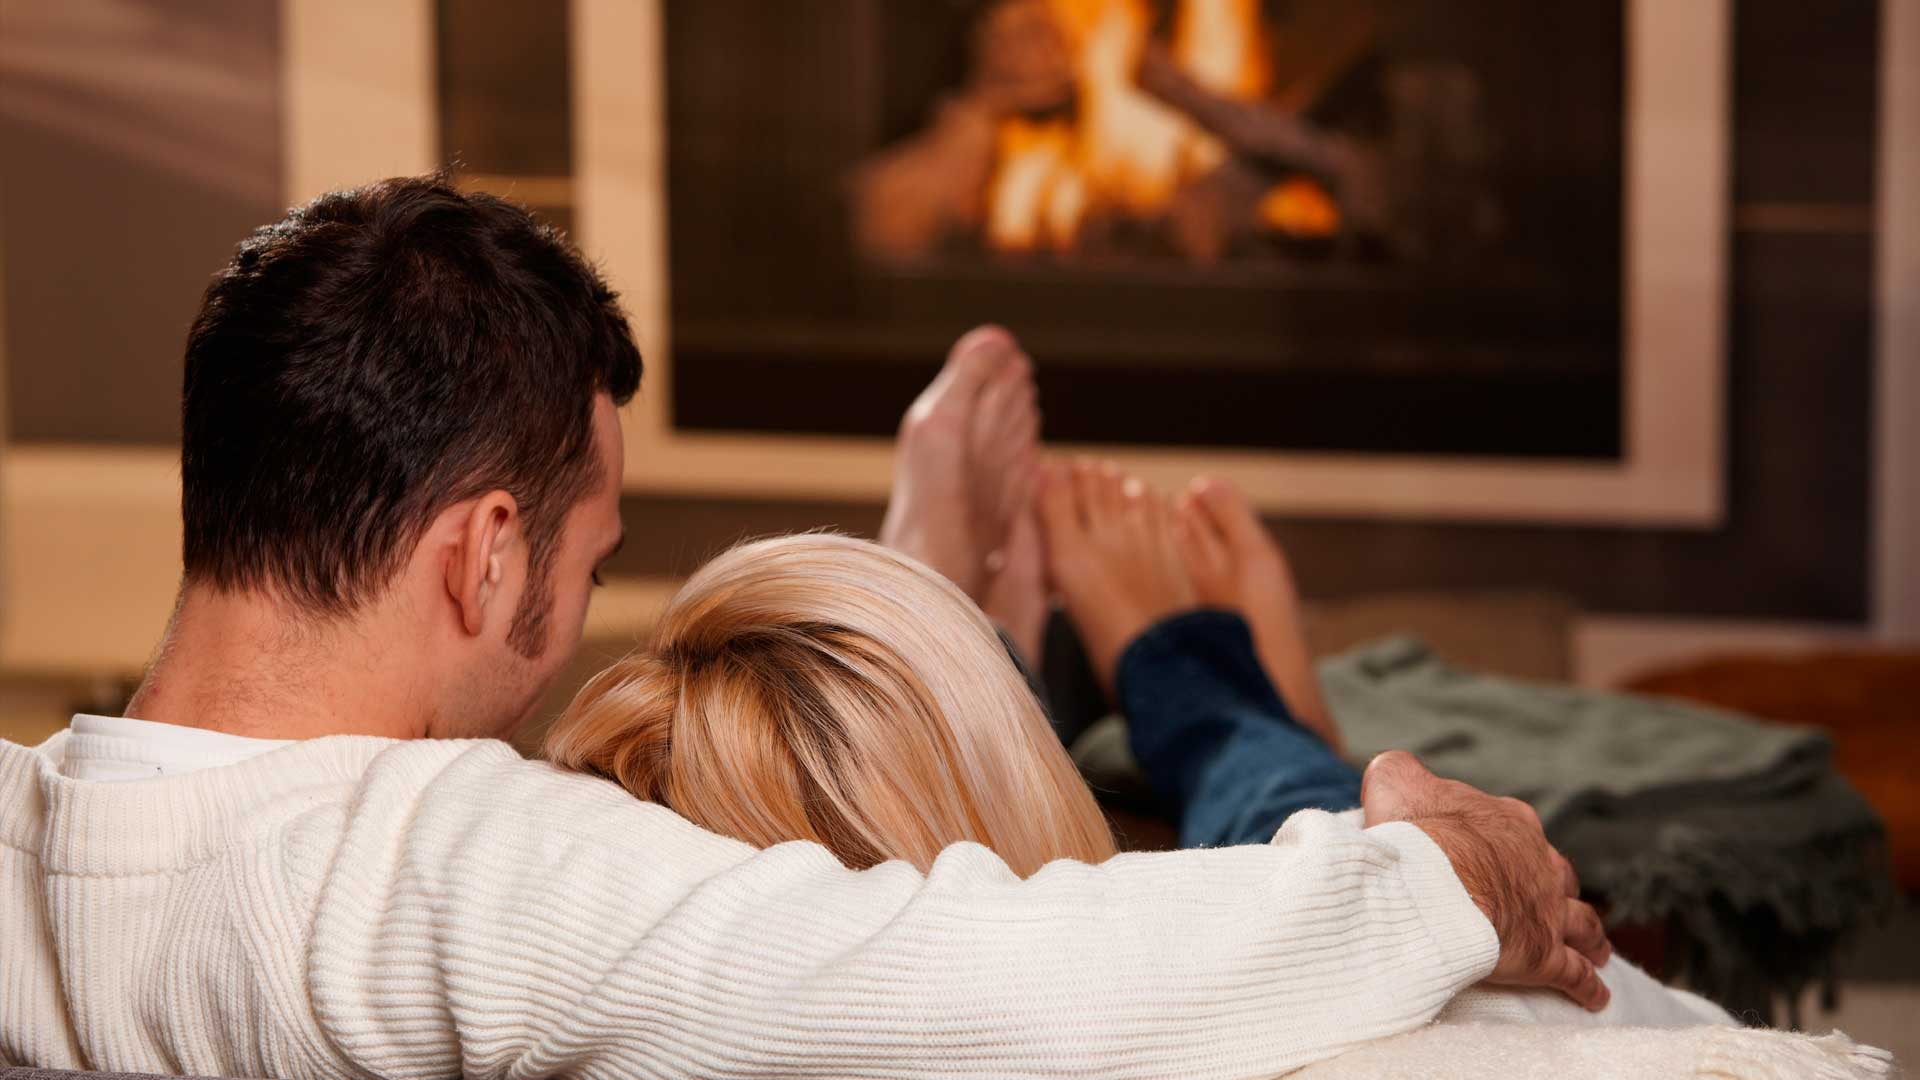 image shows man and woman sat infront of their gas fire